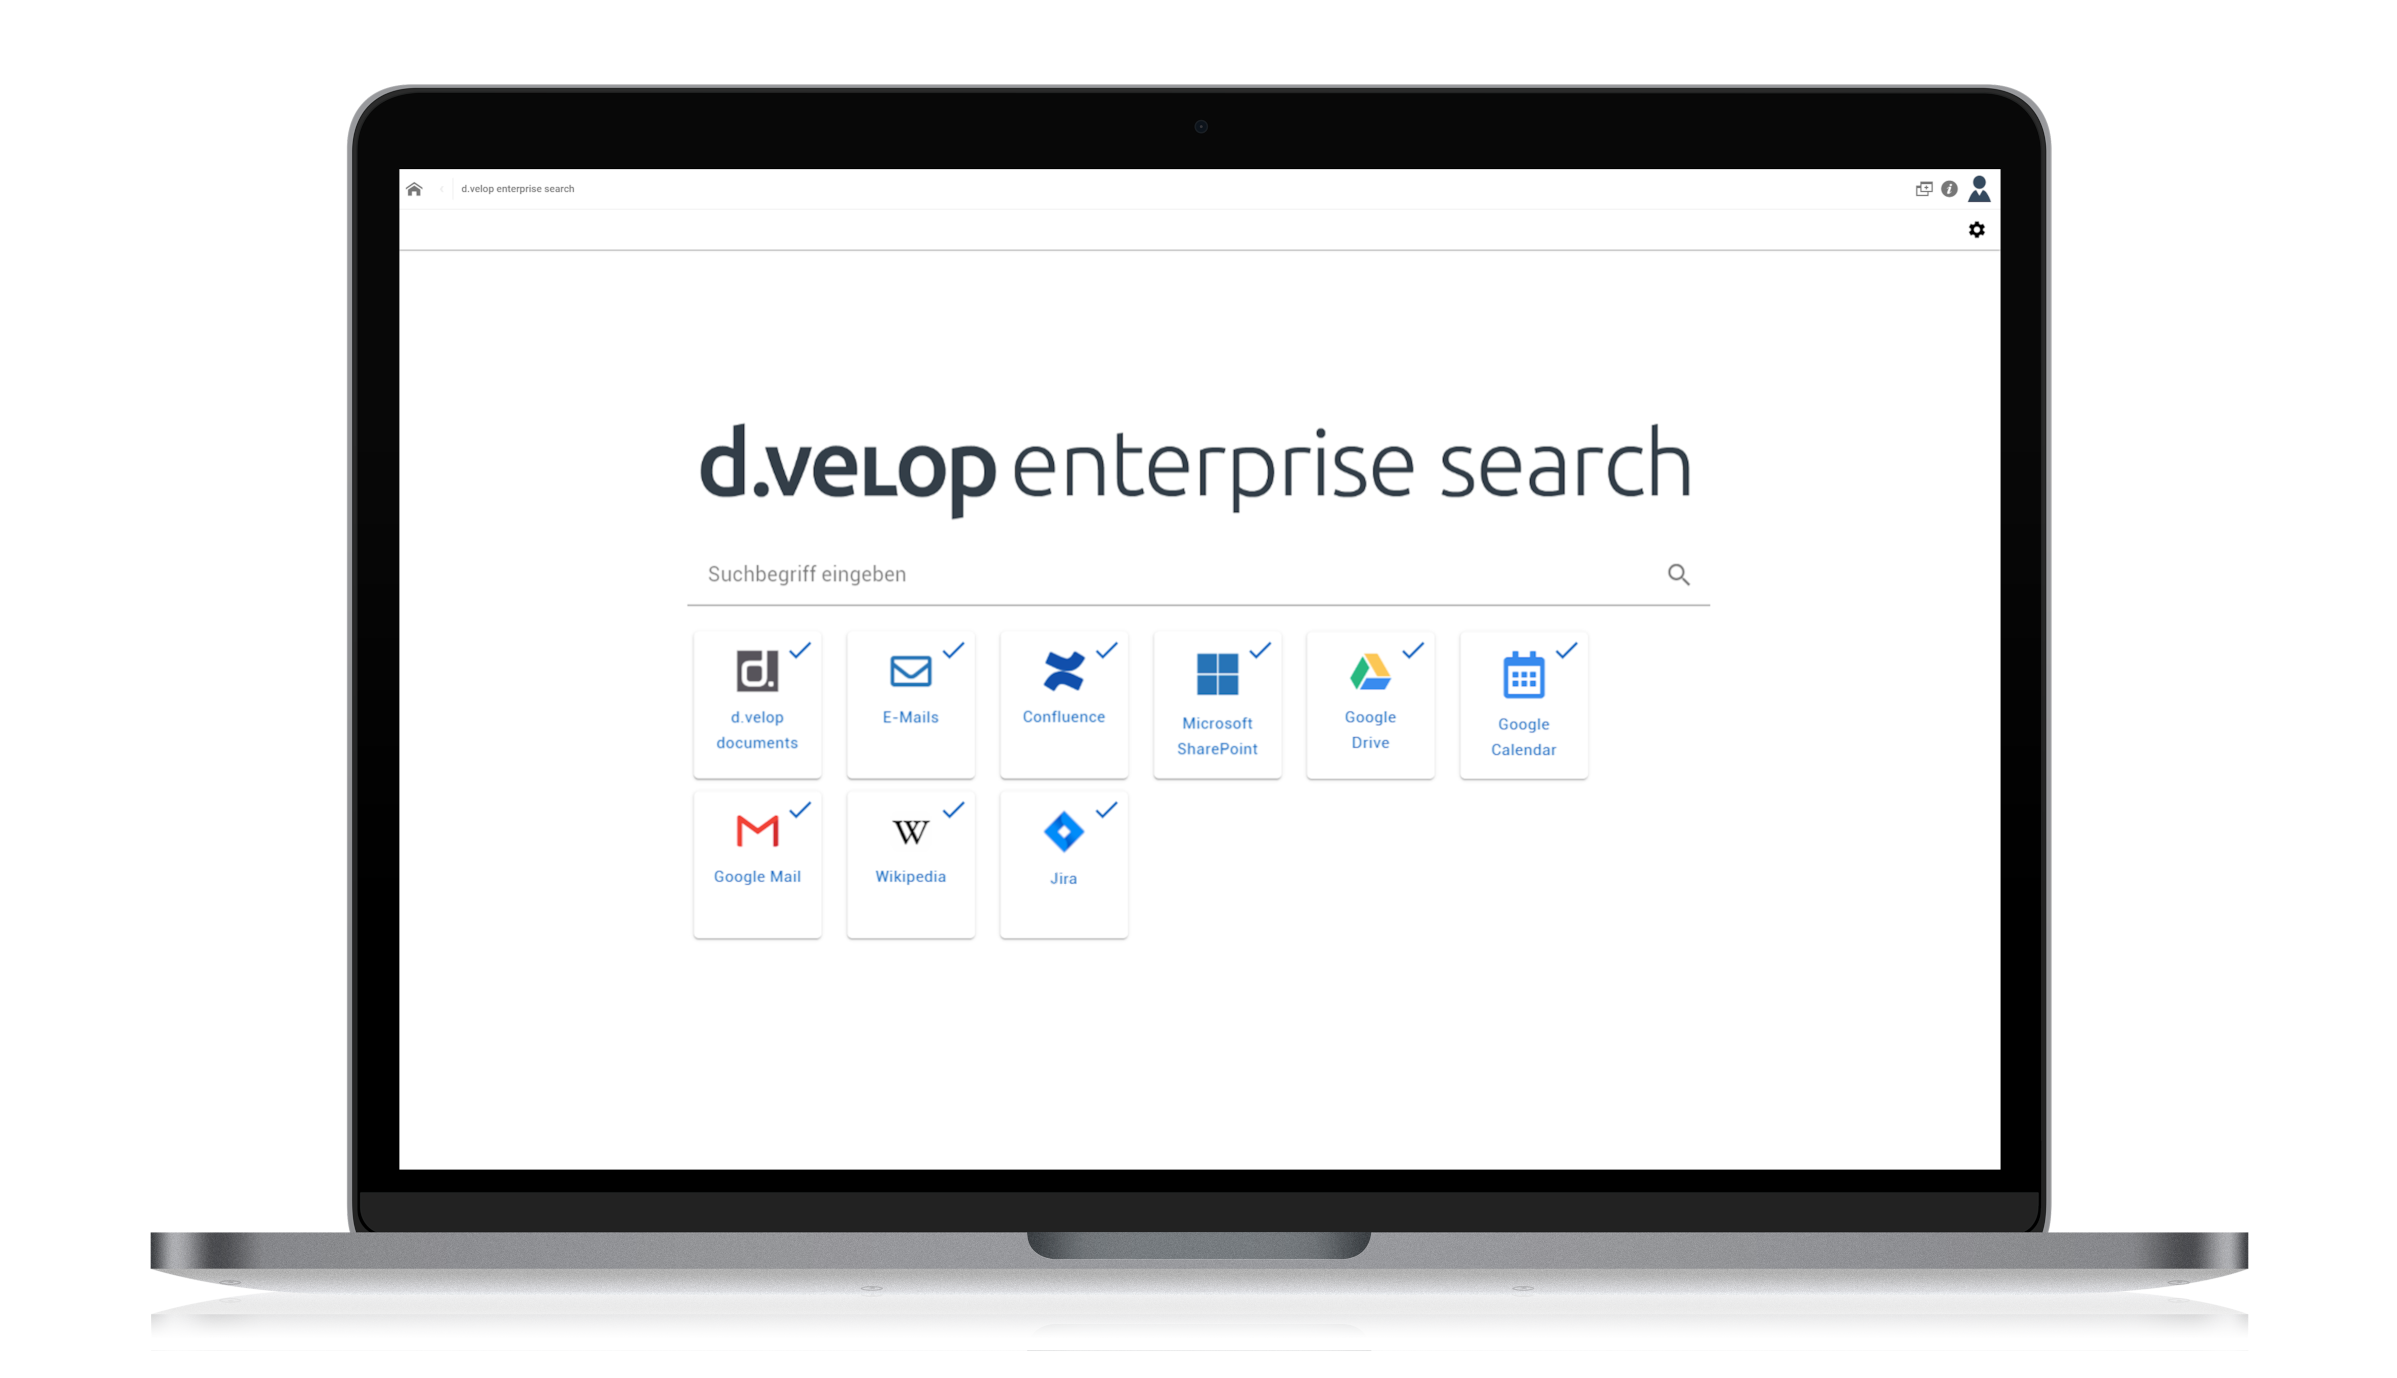 d.velop enterprise search